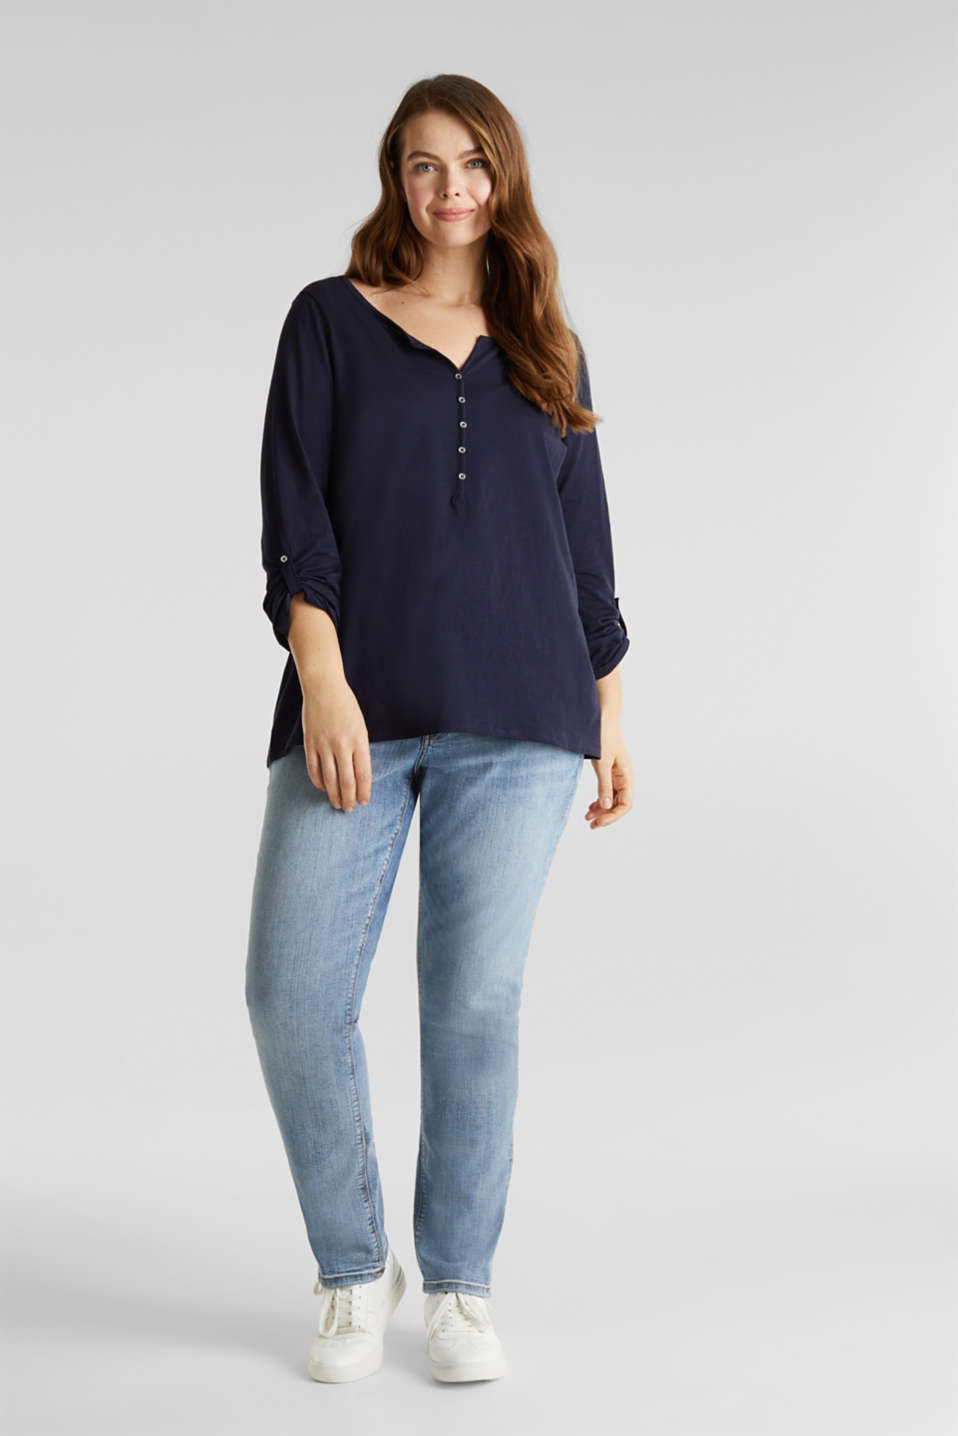 CURVY long sleeve top, organic cotton, NAVY, detail image number 1